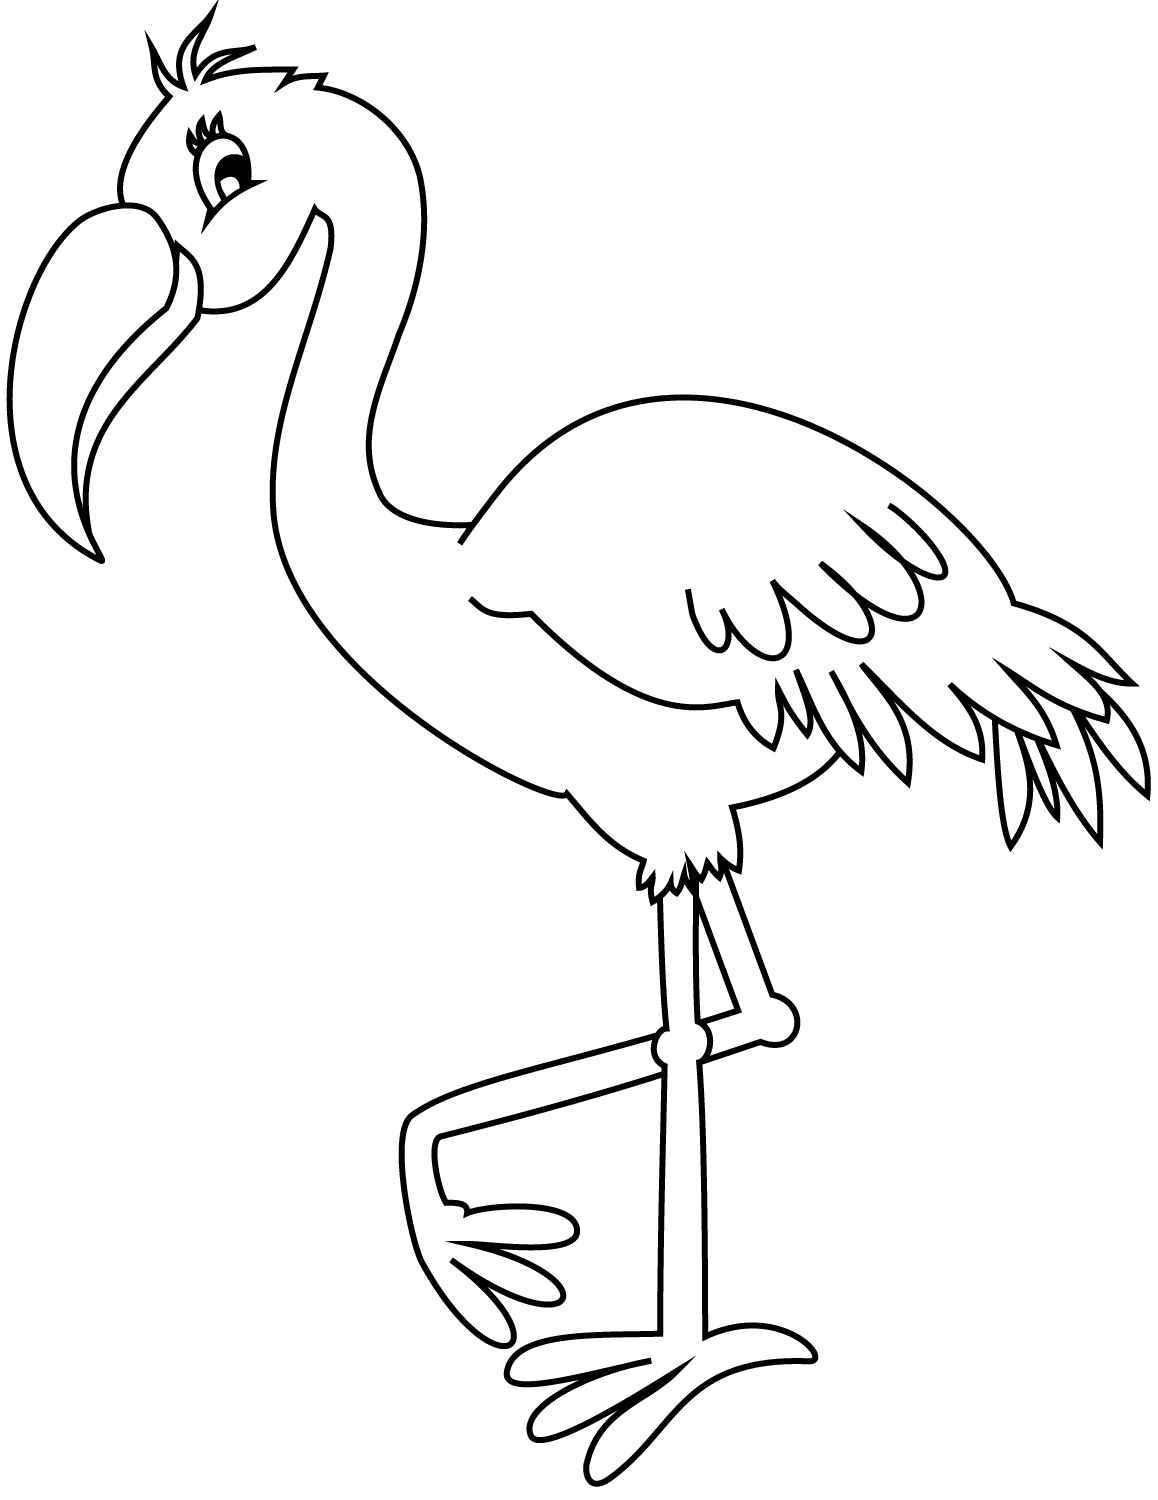 Animal Coloring Pages Free Coloring Pages Printable For